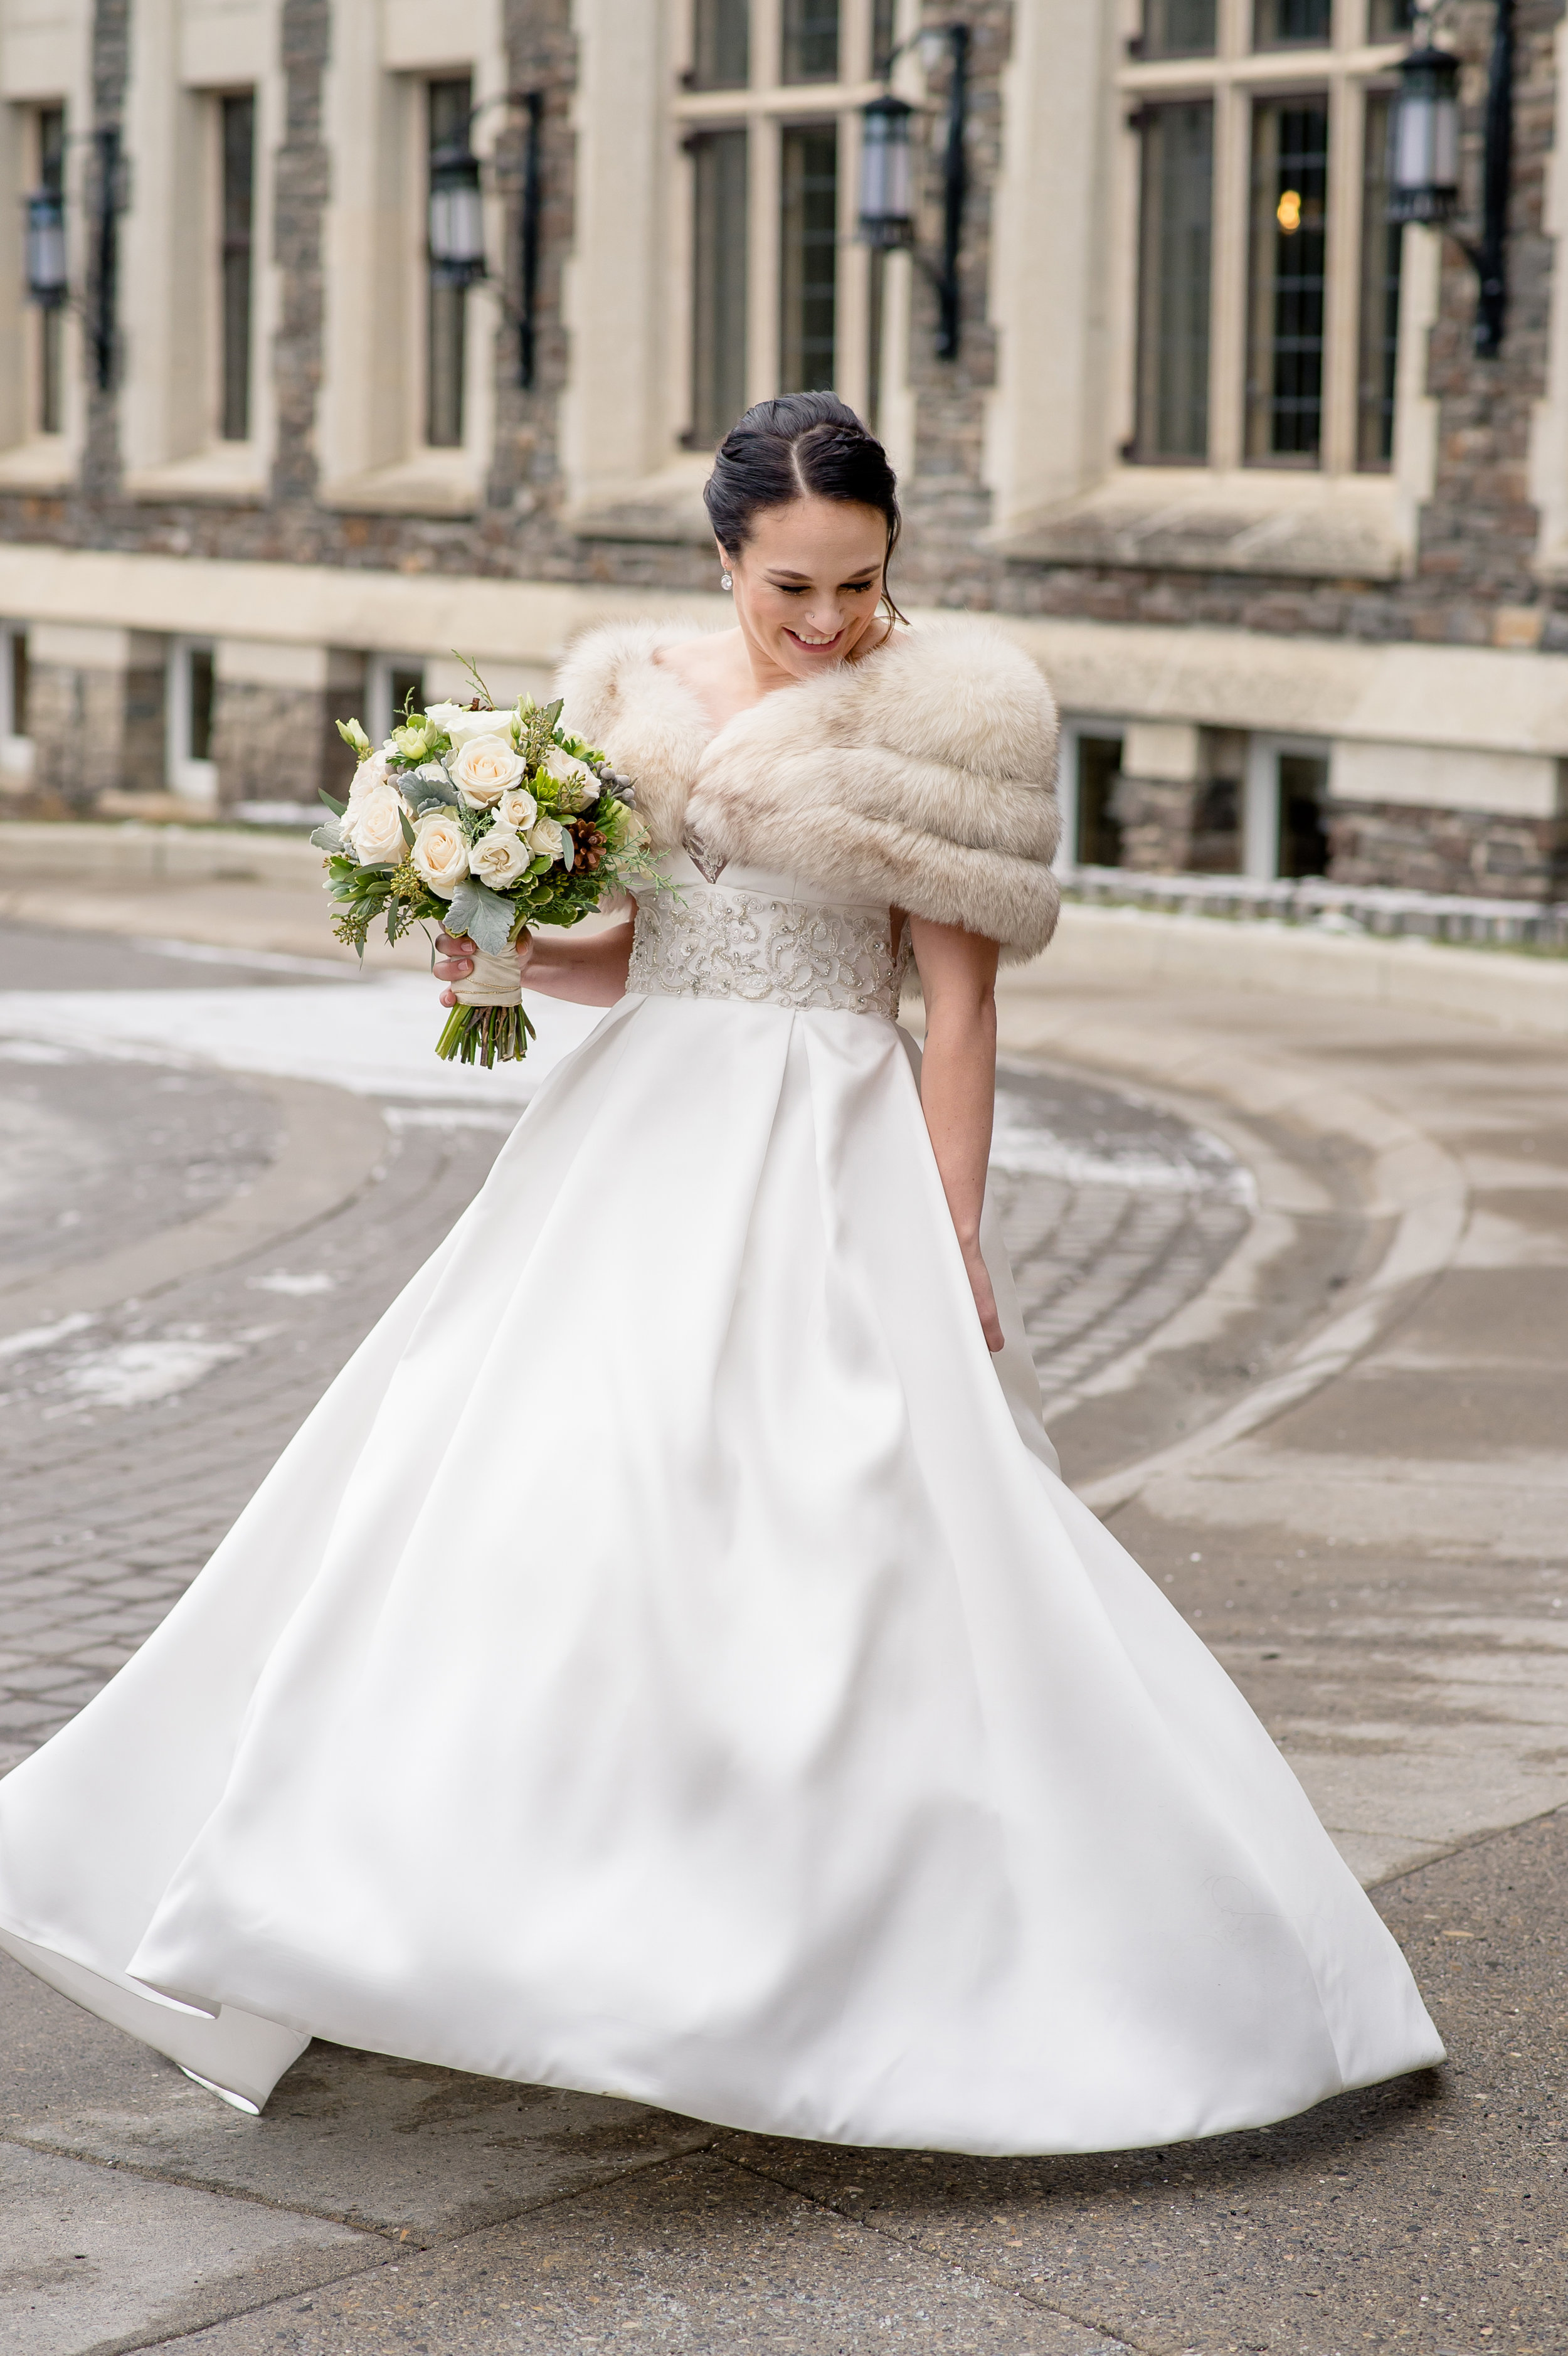 Winter wedding in Banff, Canada | Anne Barge Harlequin gown from Little White Dress in Denver, Colorado |  Orange Girl Photography